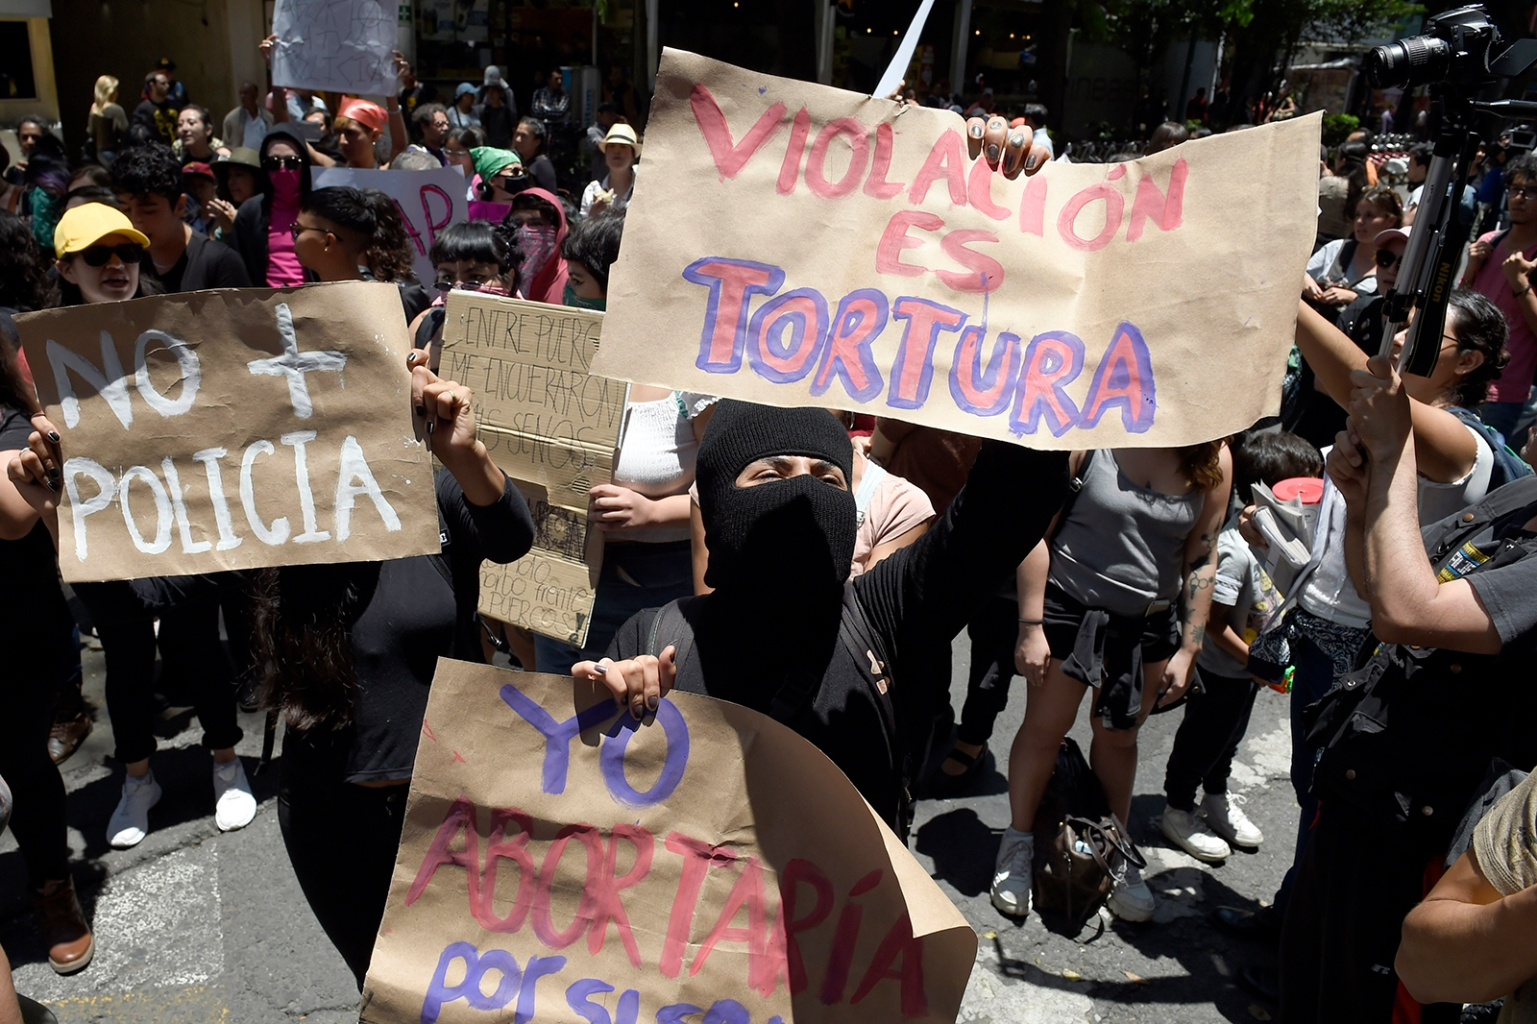 A group of activists take part in a protest called by civil organizations against the police, after four police officers were accused of raping a minor in their patrol car, in Mexico City on Aug. 12. ALFREDO ESTRELLA/AFP/Getty Images